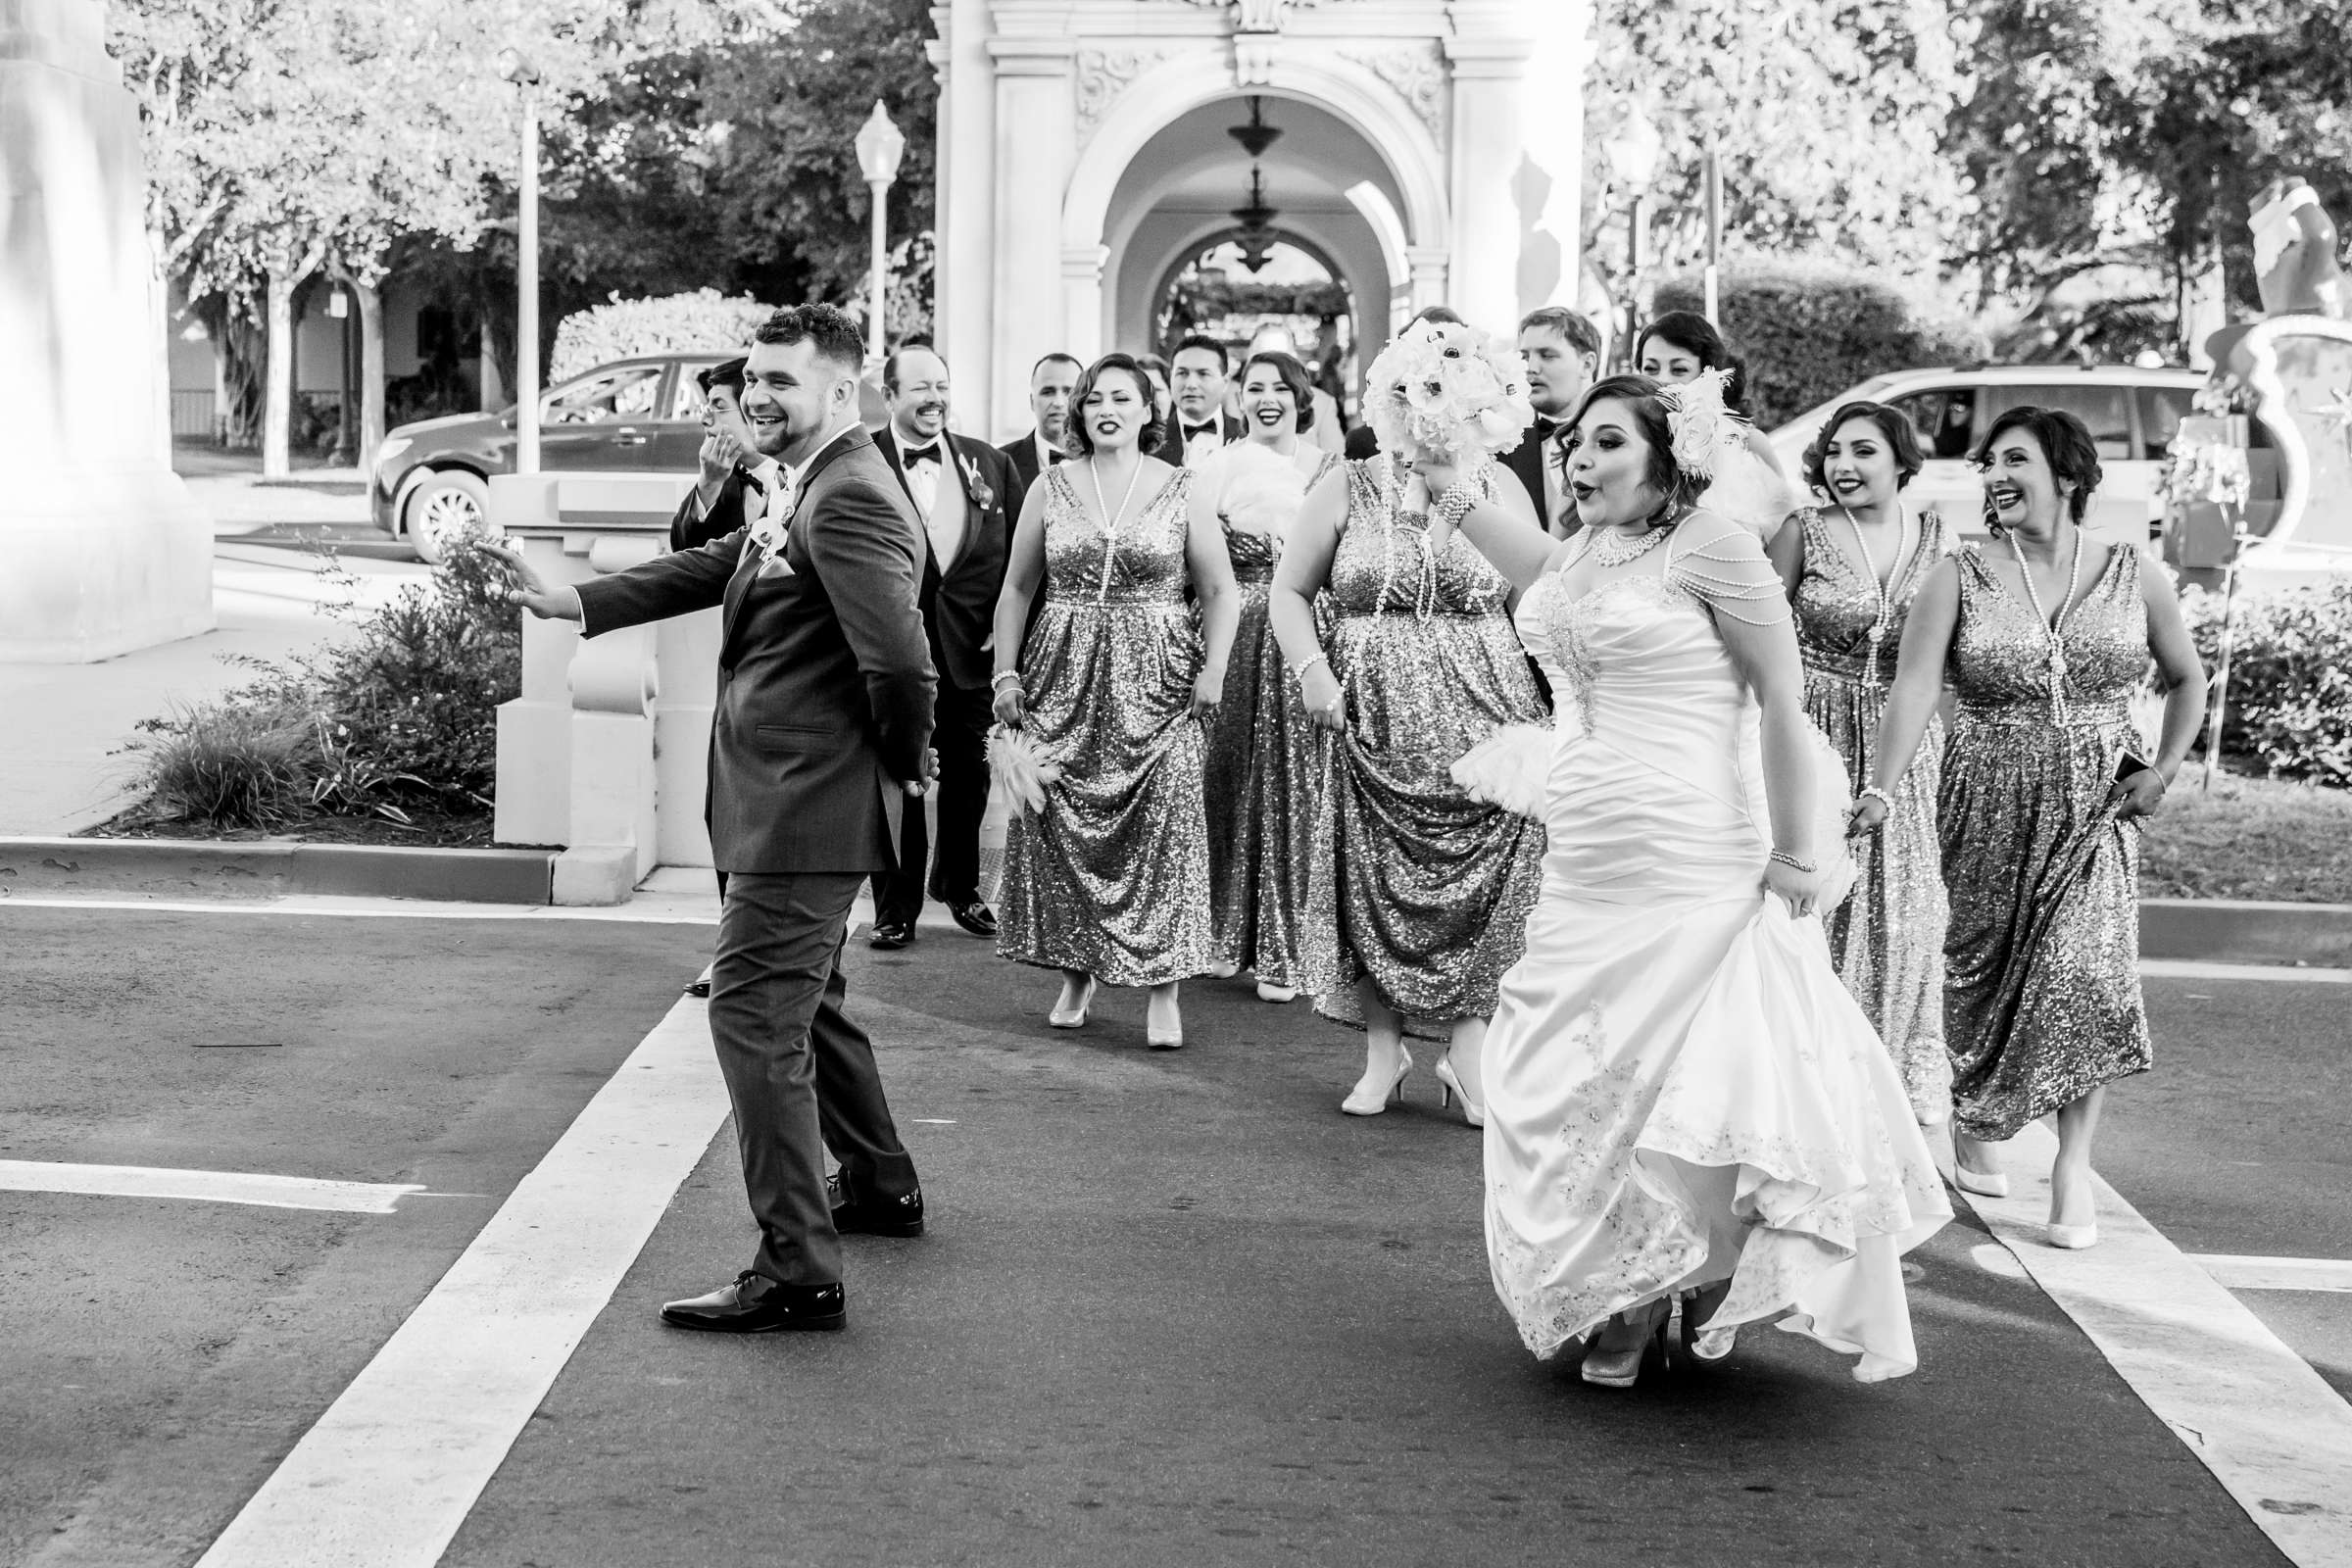 The Prado Wedding coordinated by Breezy Day Weddings, Aalis and Michael Wedding Photo #74 by True Photography